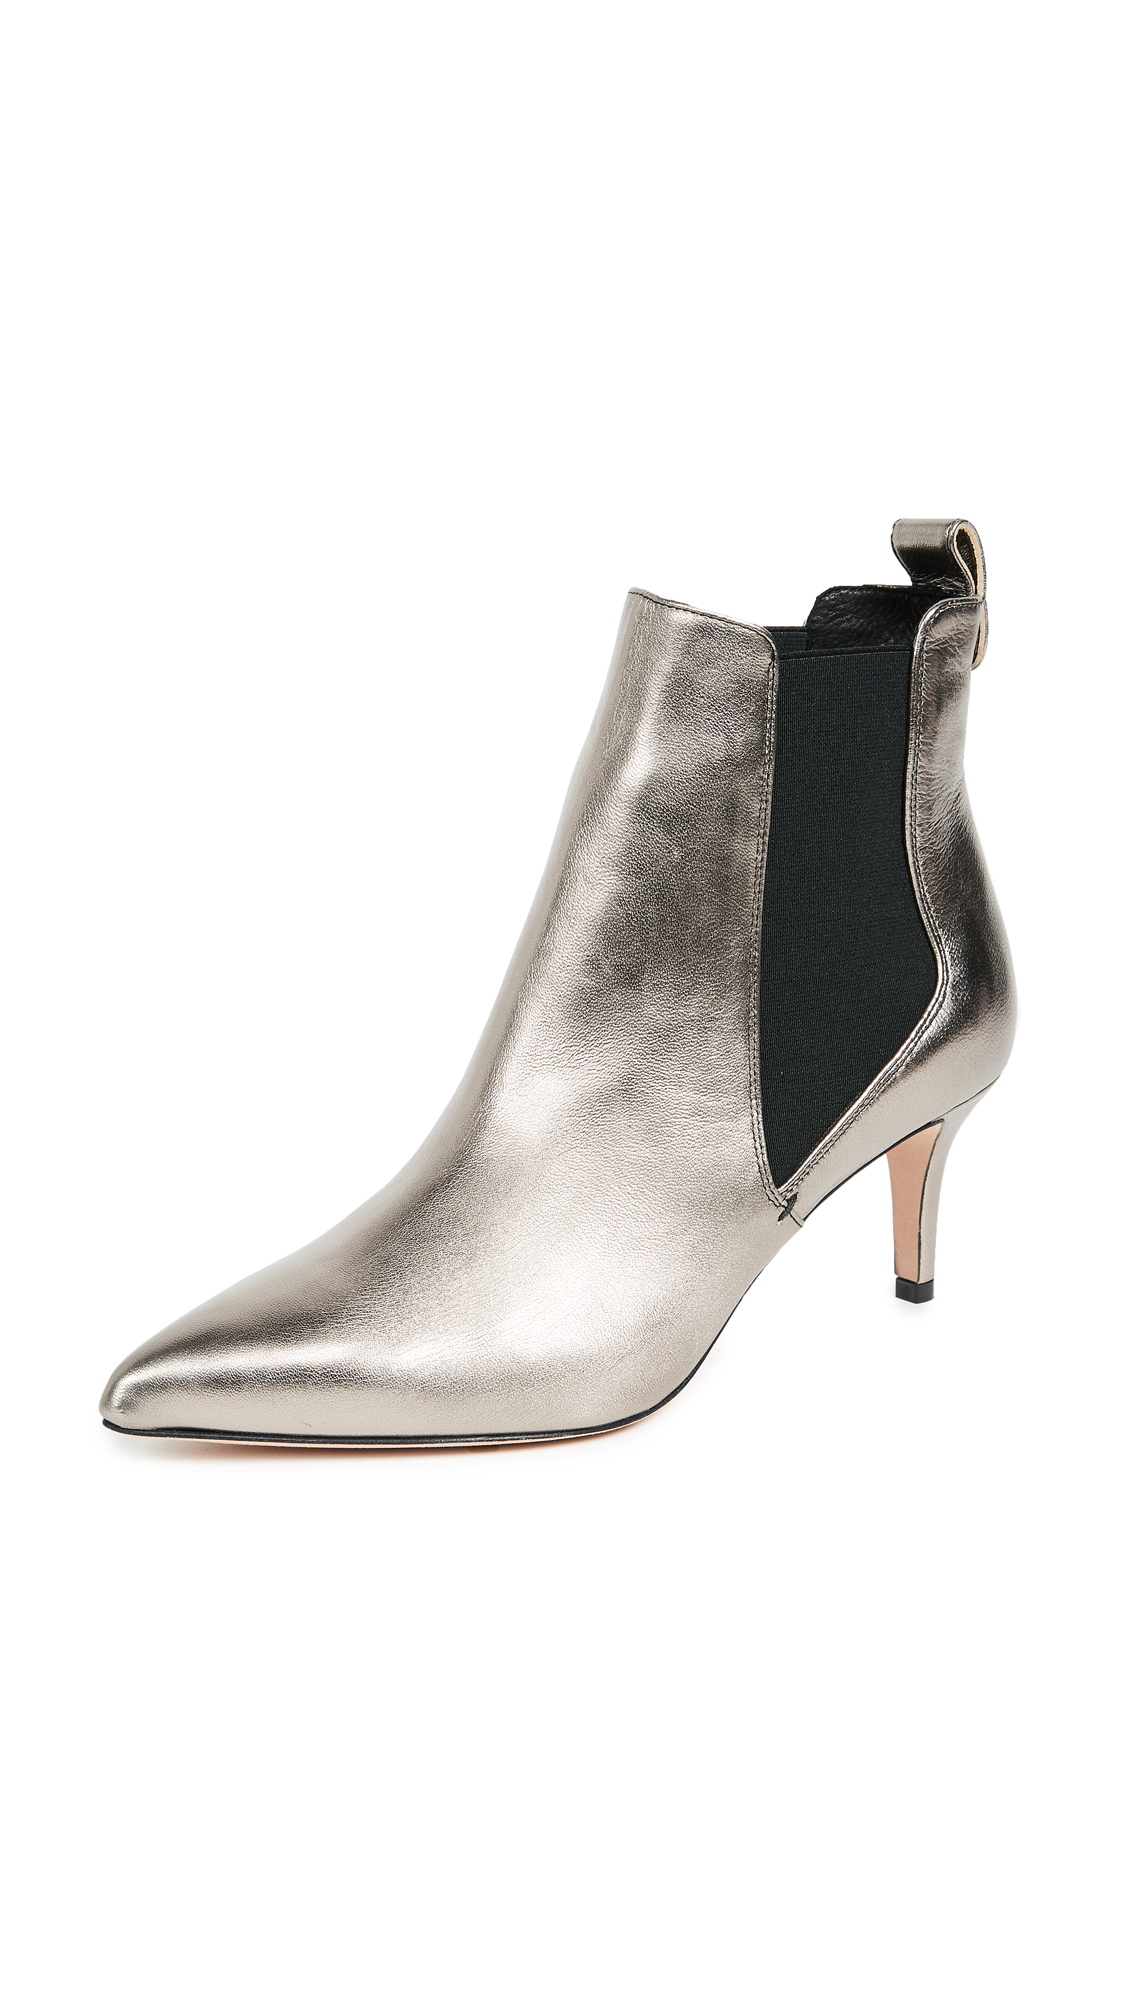 Veronica Beard Parker Chelsea Booties - Platinum